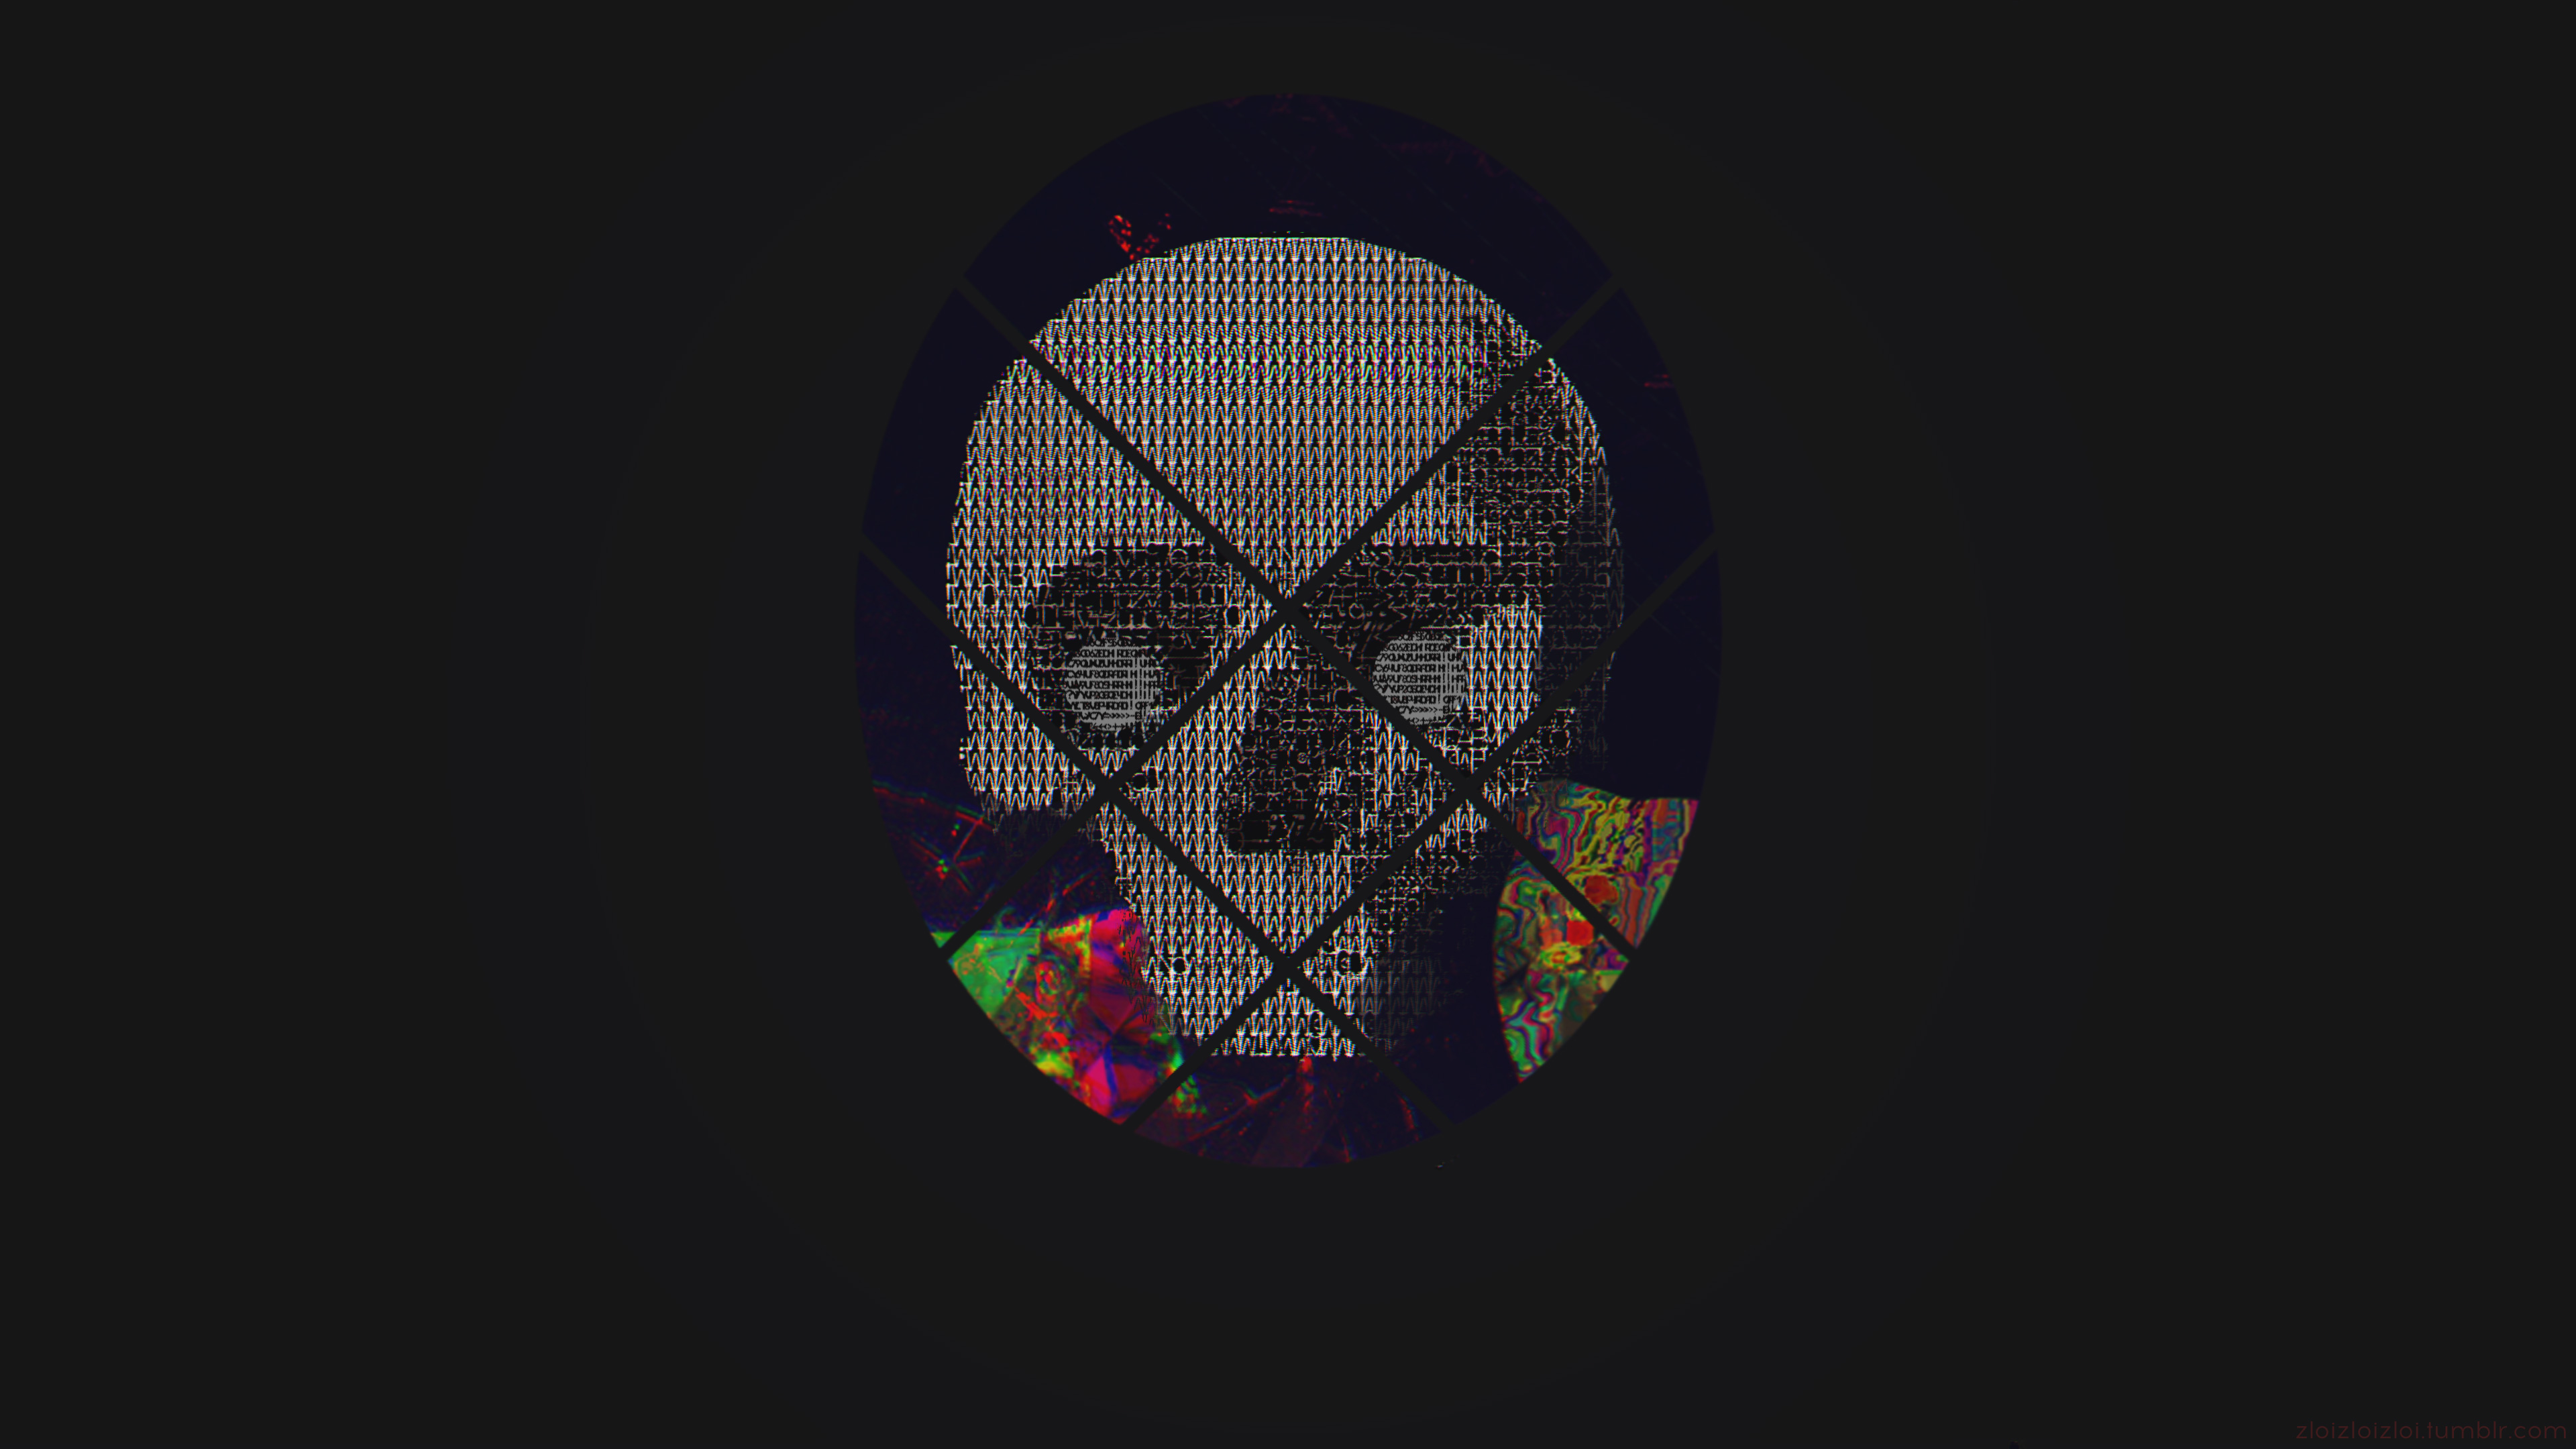 1600x900 Skull Abstract Art 4k 1600x900 Resolution Hd 4k Wallpapers Images Backgrounds Photos And Pictures